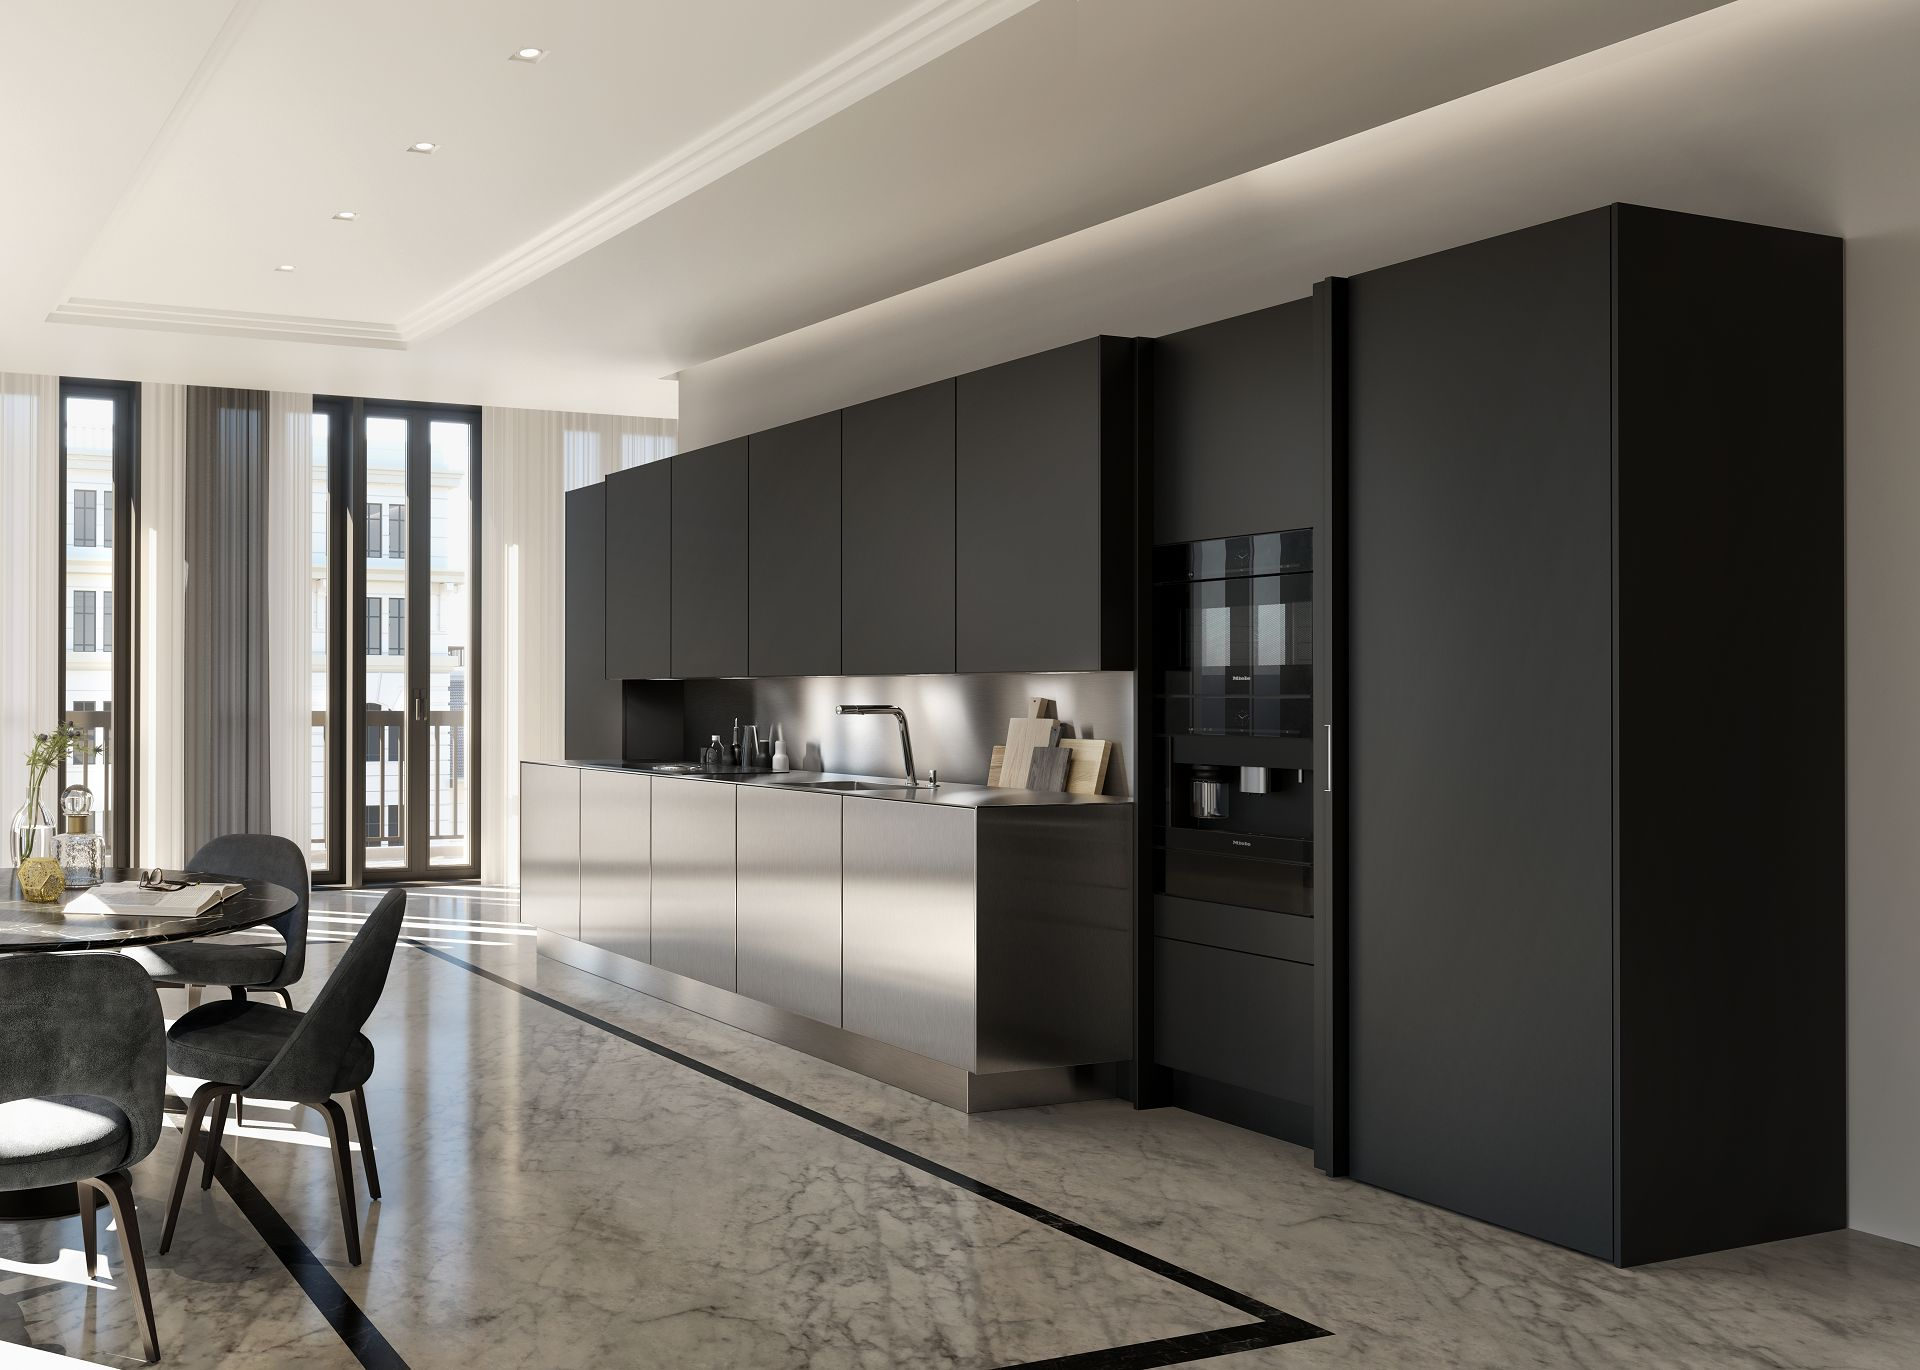 Stainless Steel: Great Kitchen Designs on a Smaller Scale